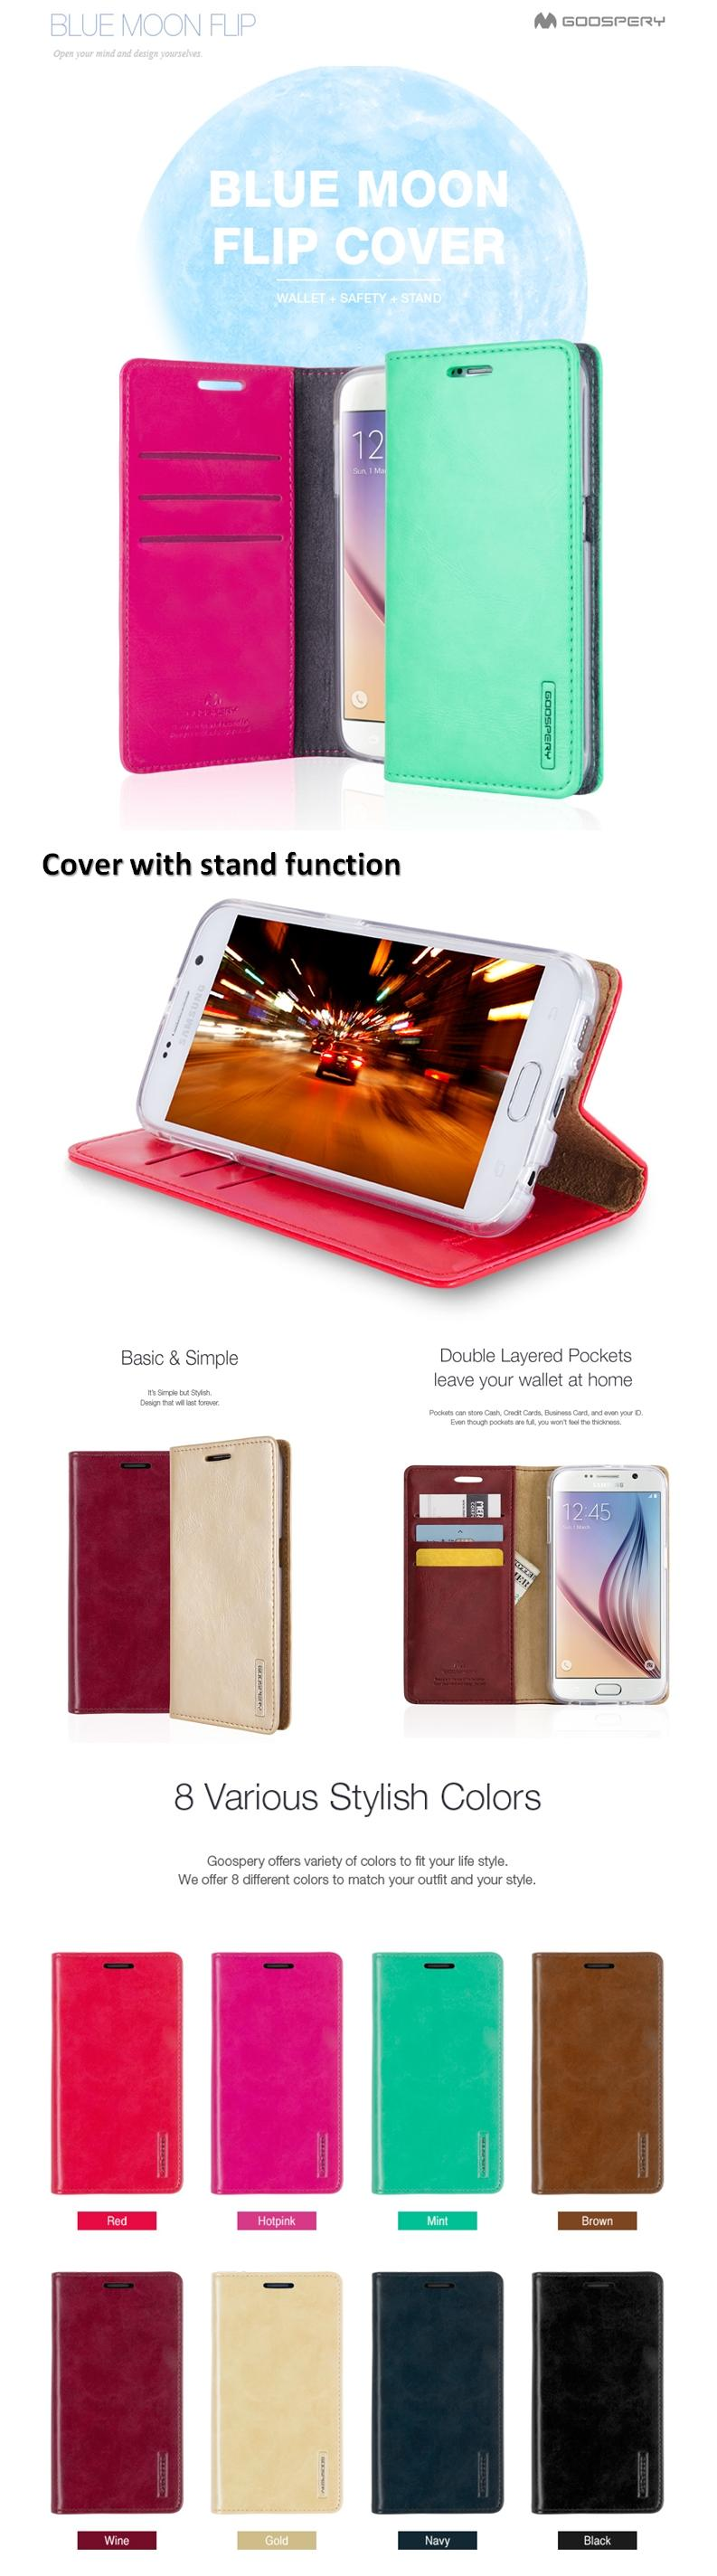 Goospery Blue Moon Flip Cover Case Cases Casing For Iphone Xs X 7 8 Xiaomi Mi 6 Canvas Diary Pink Specifications Of Plus